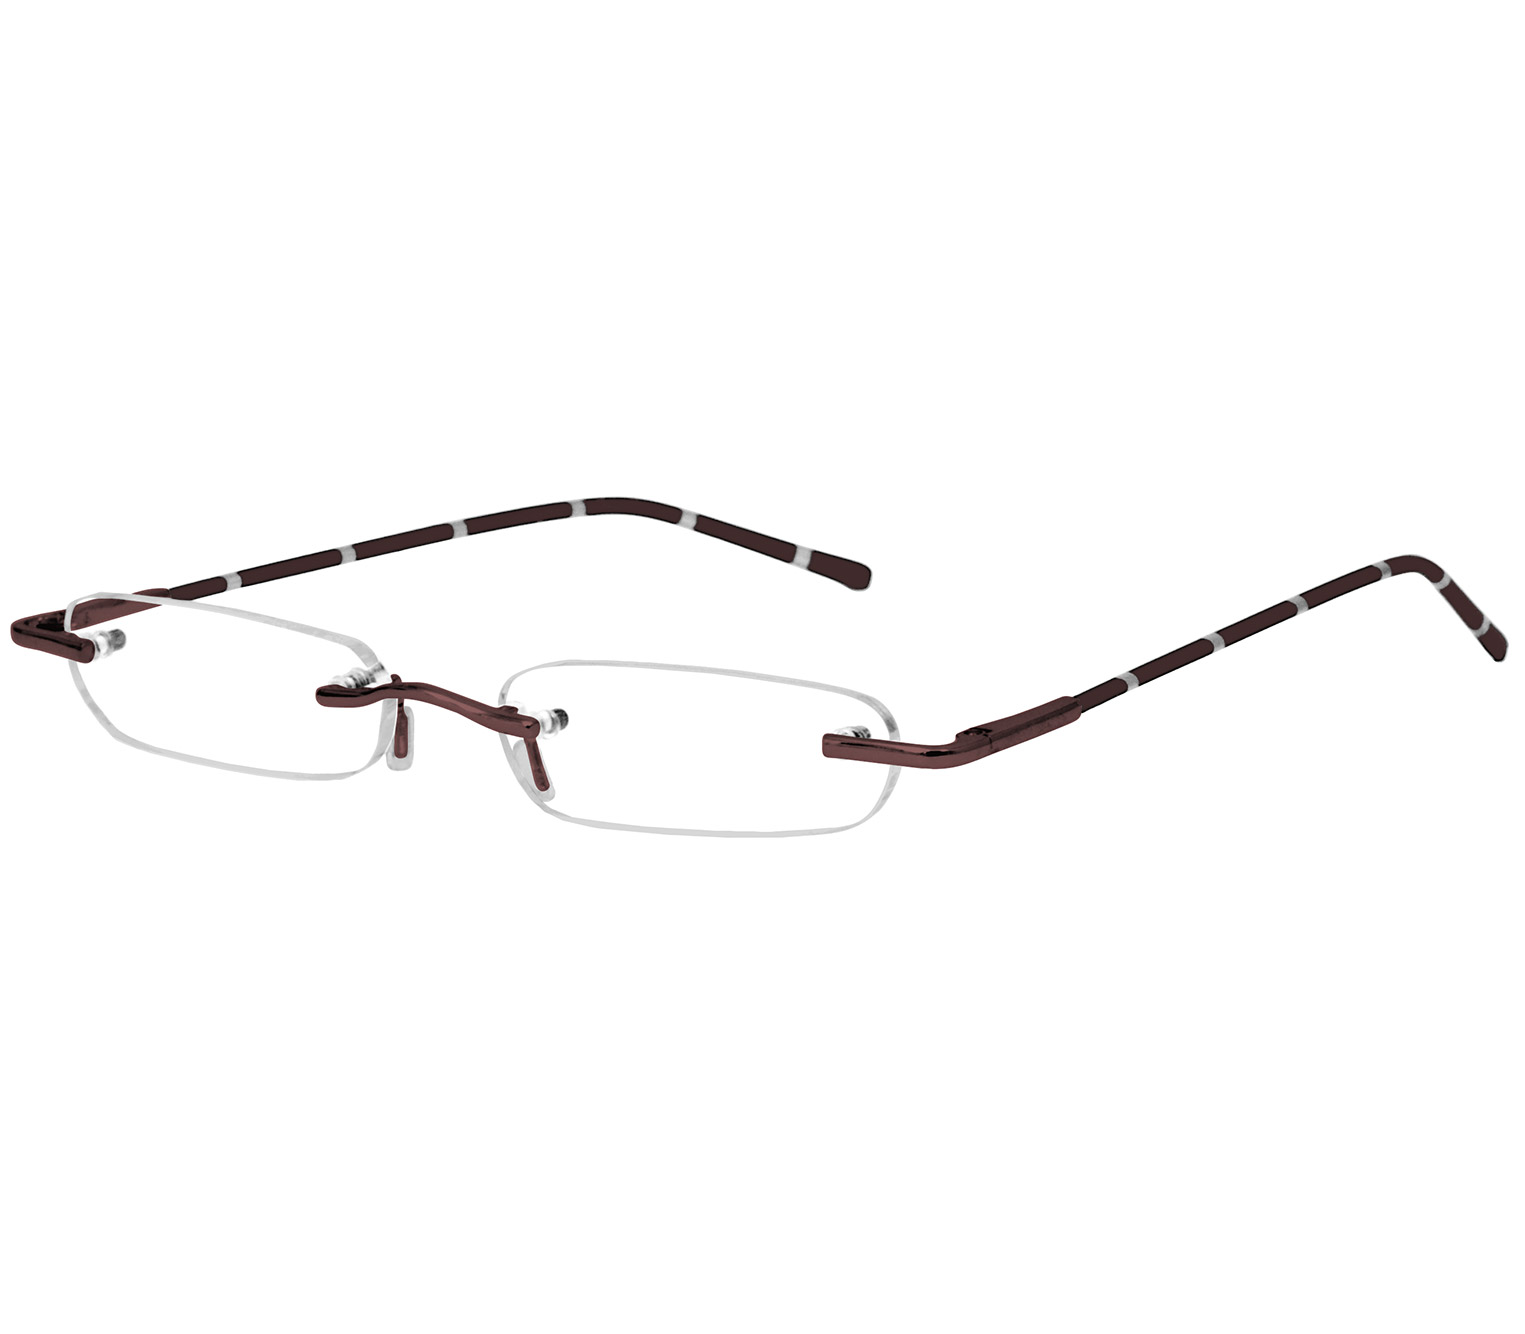 Main Image (Angle) - Pinstripe (Brown) Tube Reading Glasses